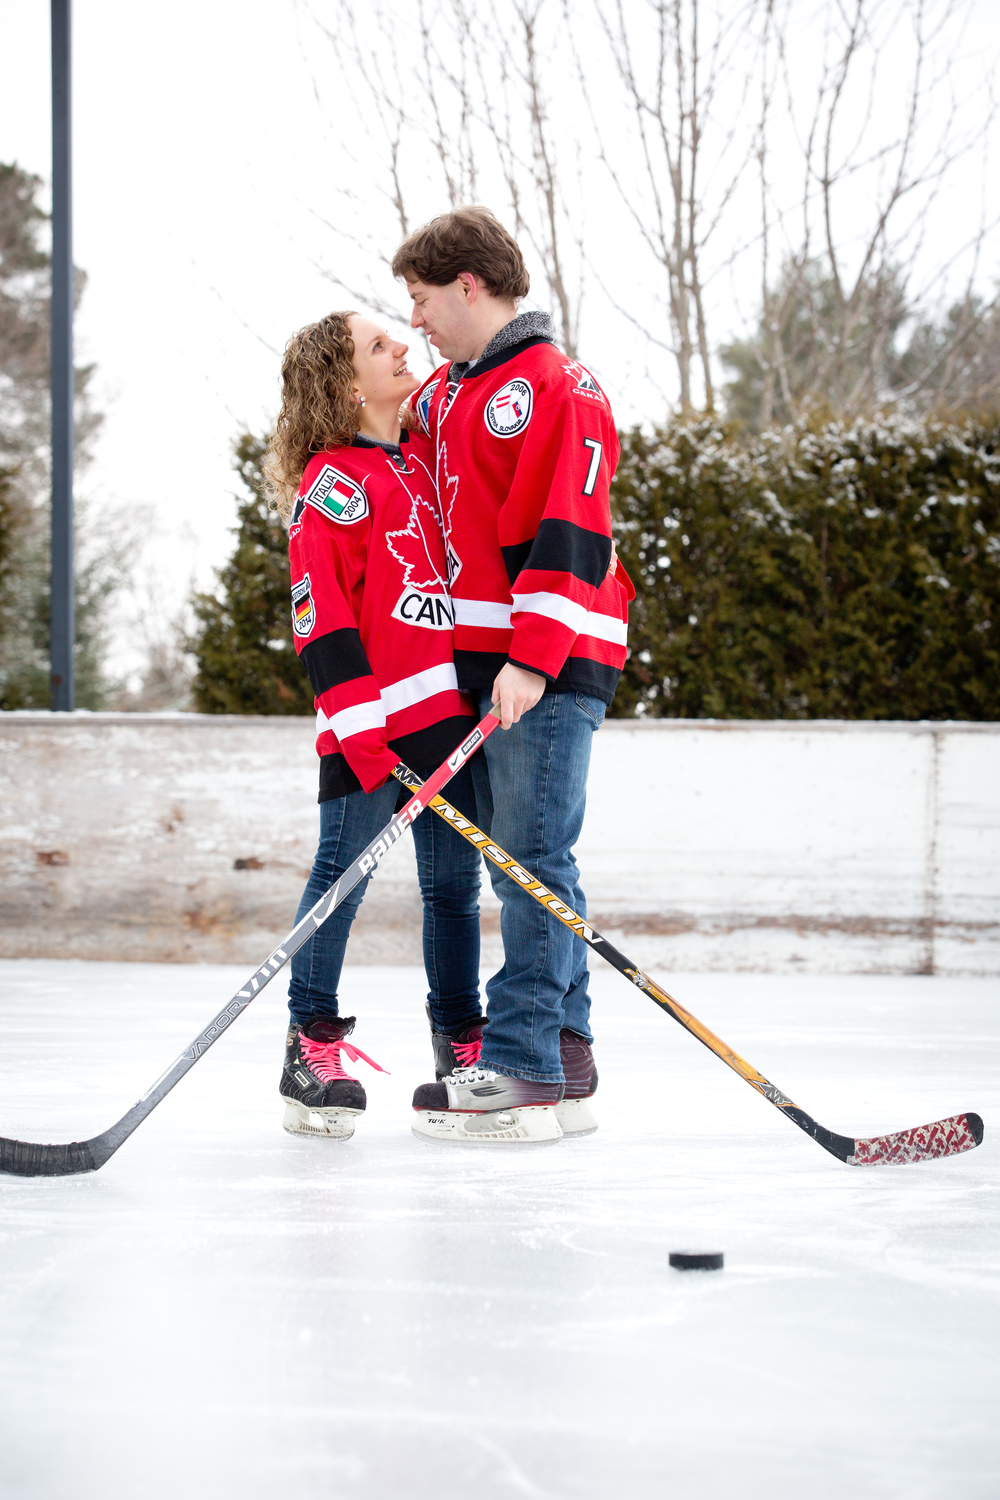 The bride & groom are huge hockey fans/players